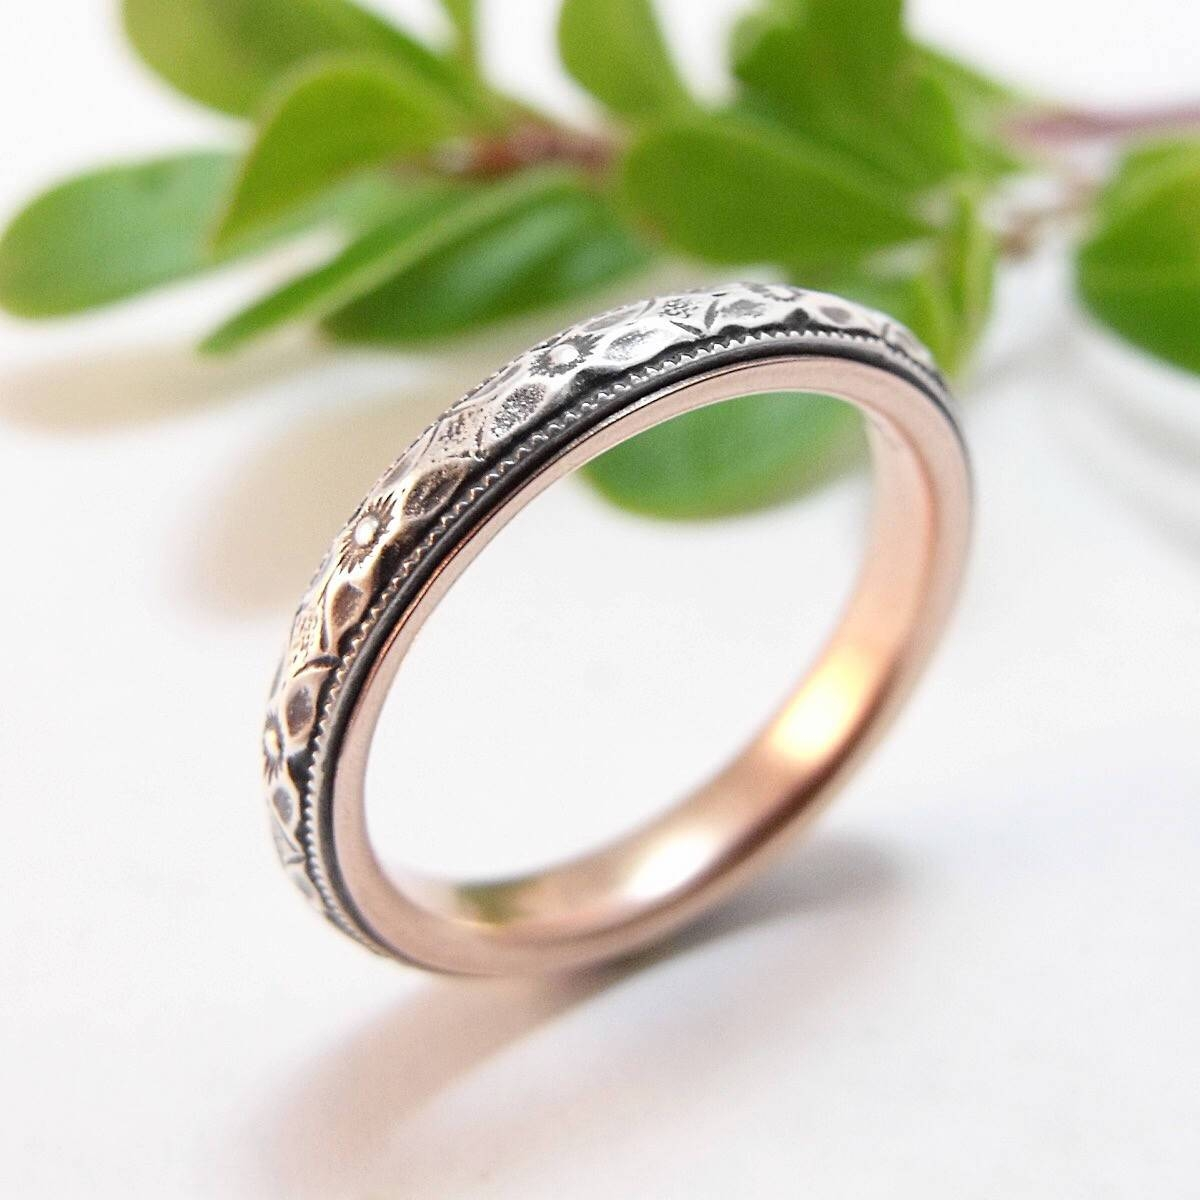 Skinny Wedding Band Womens Wedding Band Sterling Silver Throughout Skinny Wedding Bands (View 9 of 15)